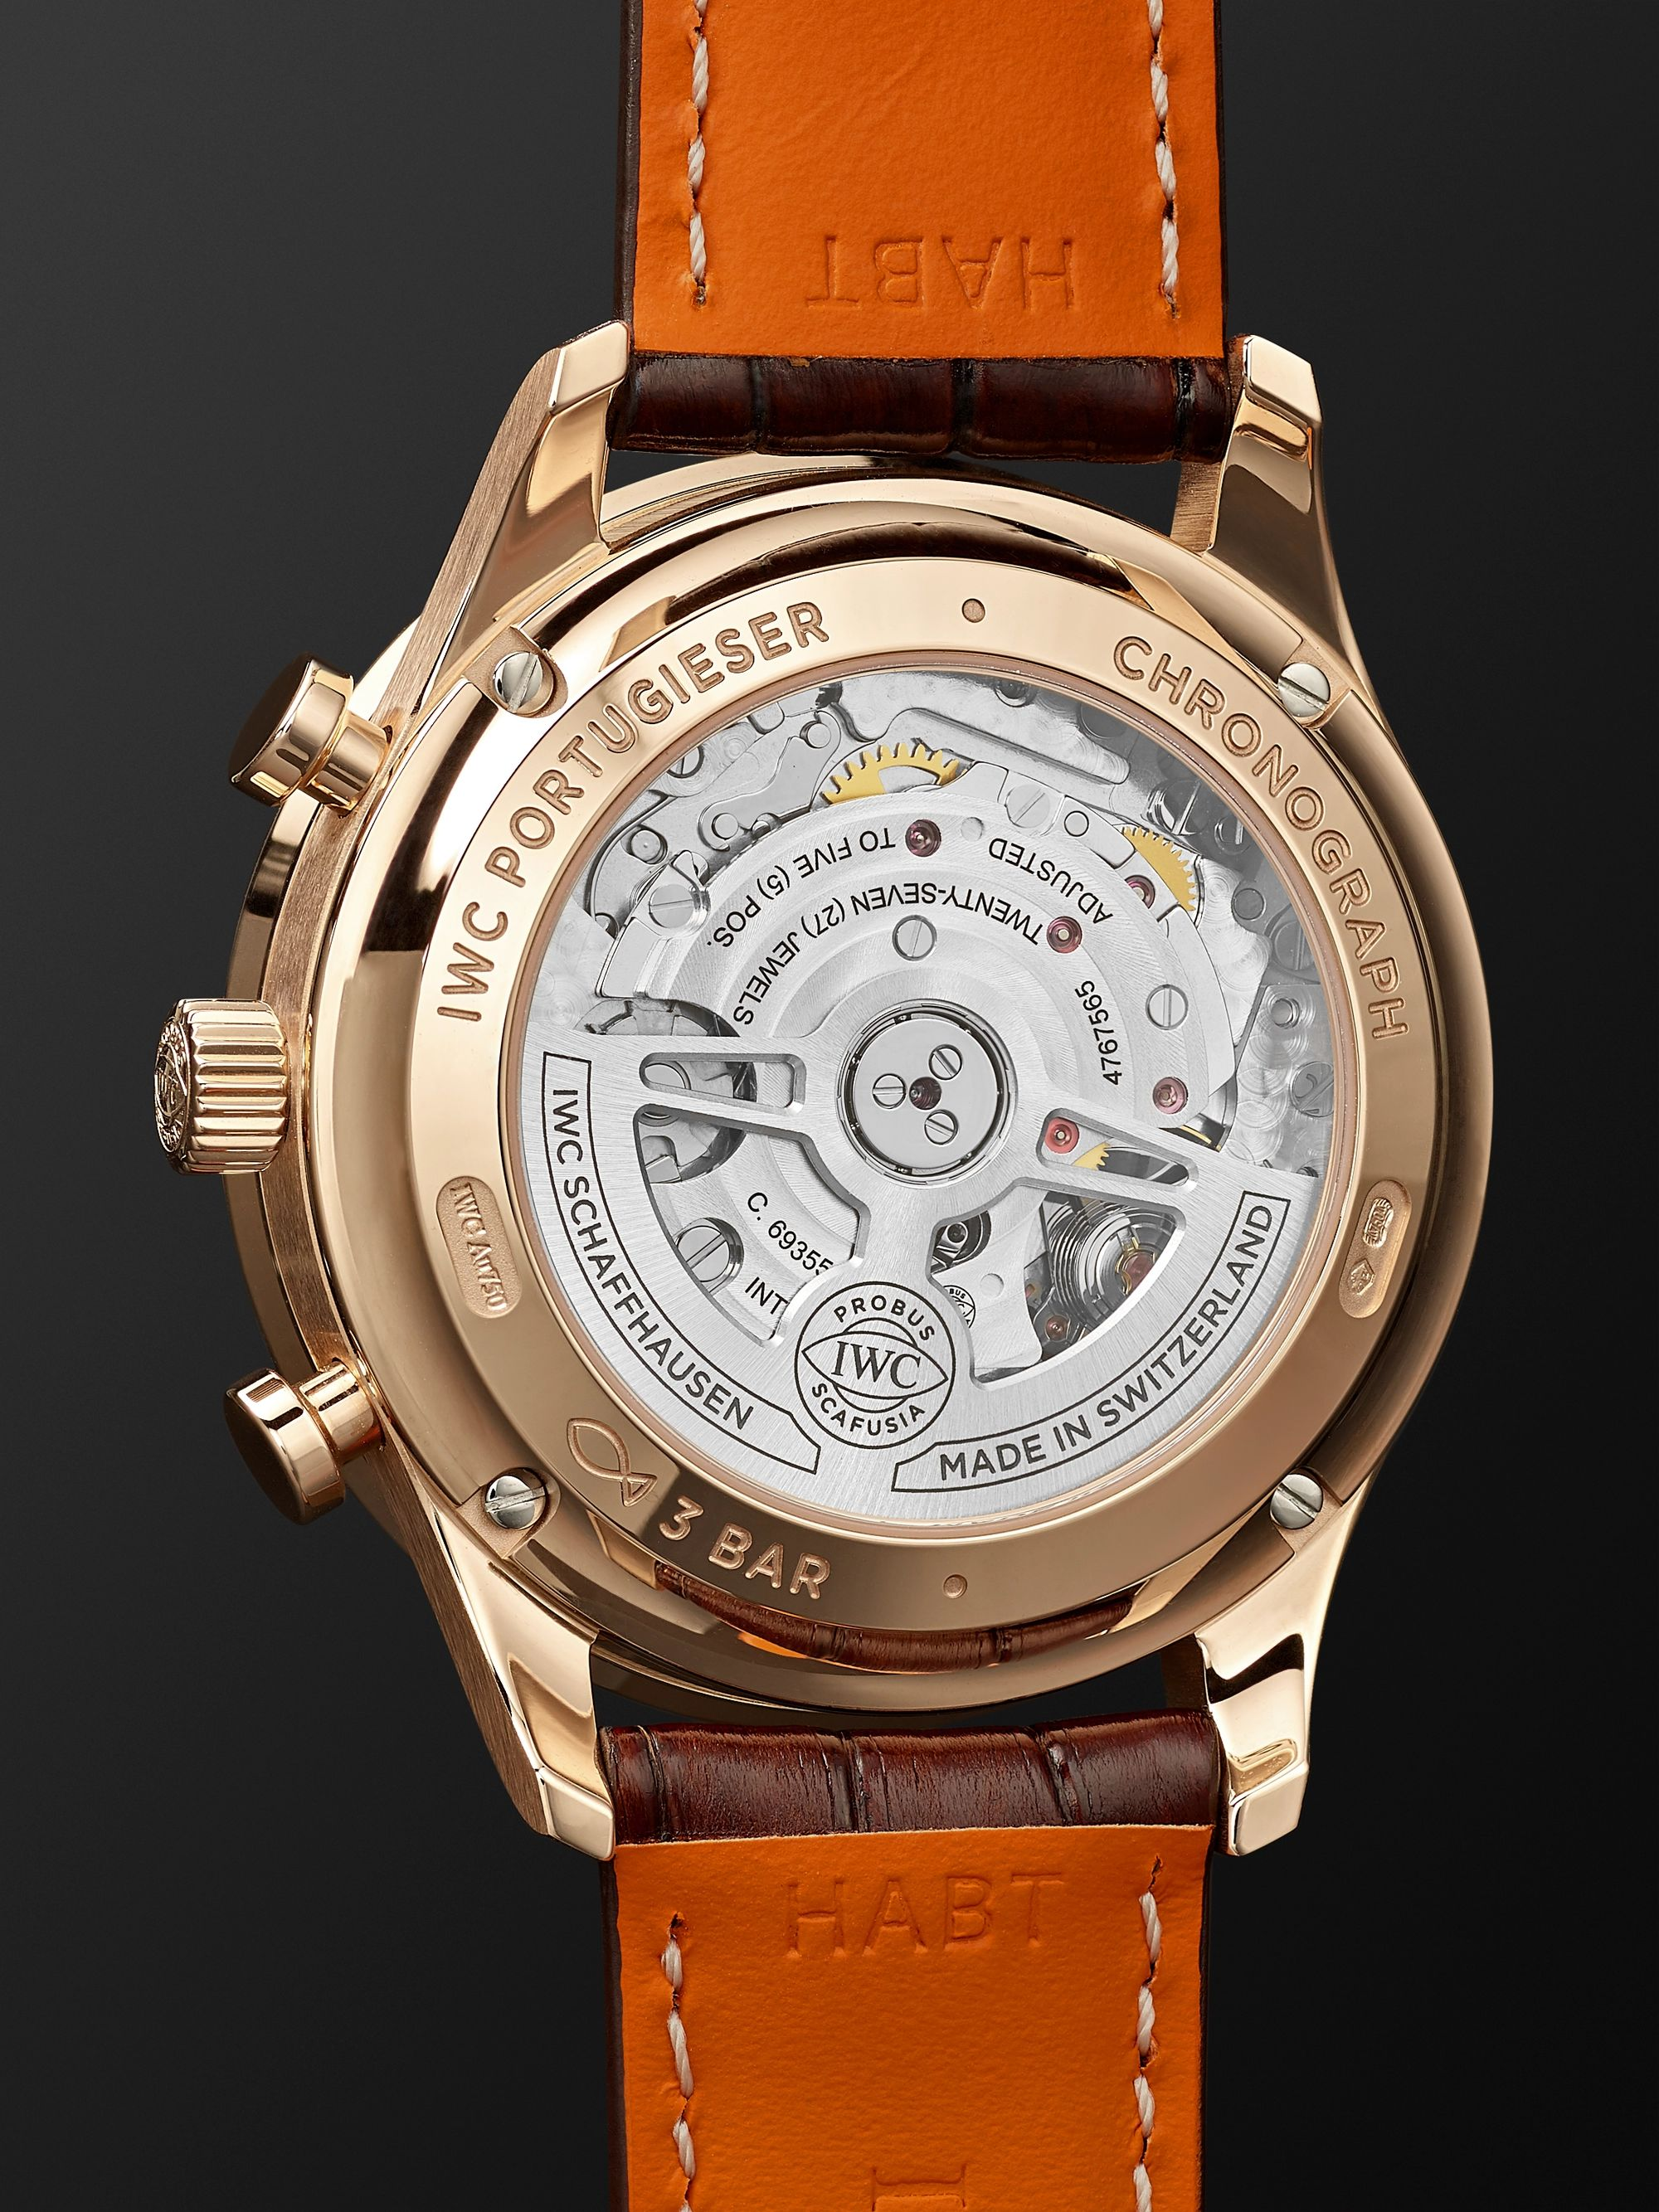 IWC SCHAFFHAUSEN Portugieser Automatic Chronograph 41mm 18-Karat Red Gold and Alligator Watch, Ref. No. IW371611